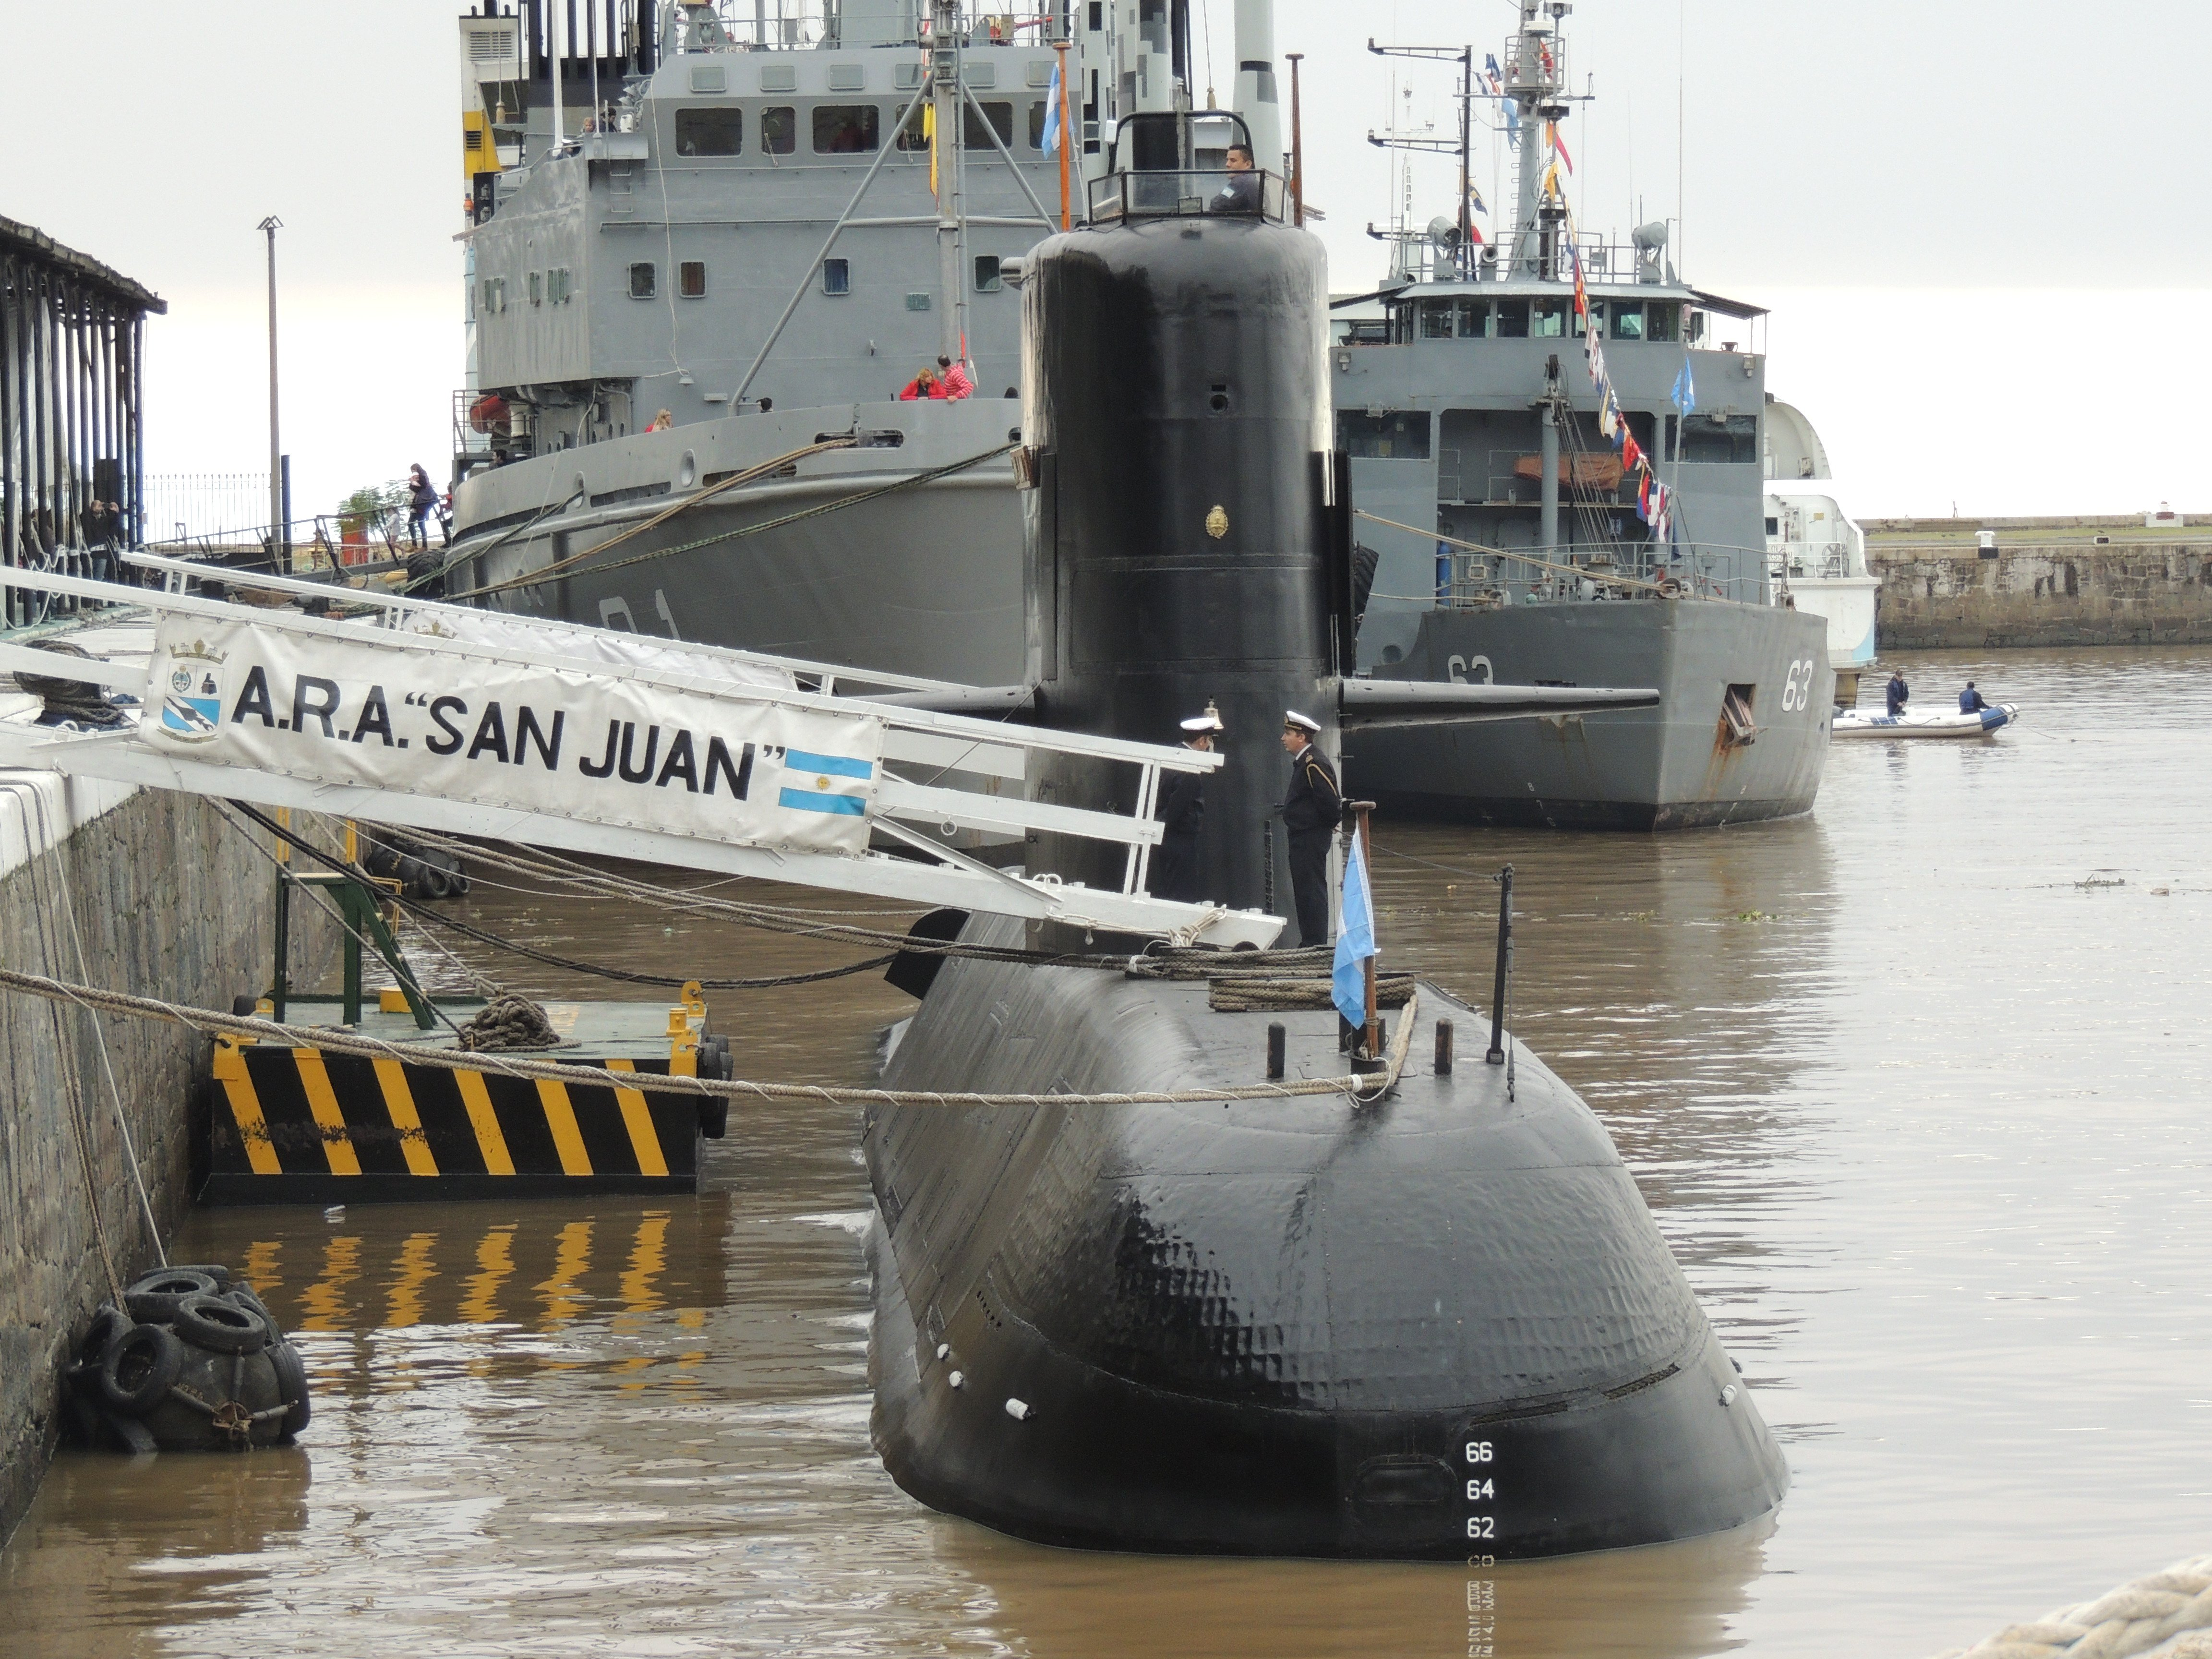 One Year Later, Search For Missing Argentine Submarine Continues